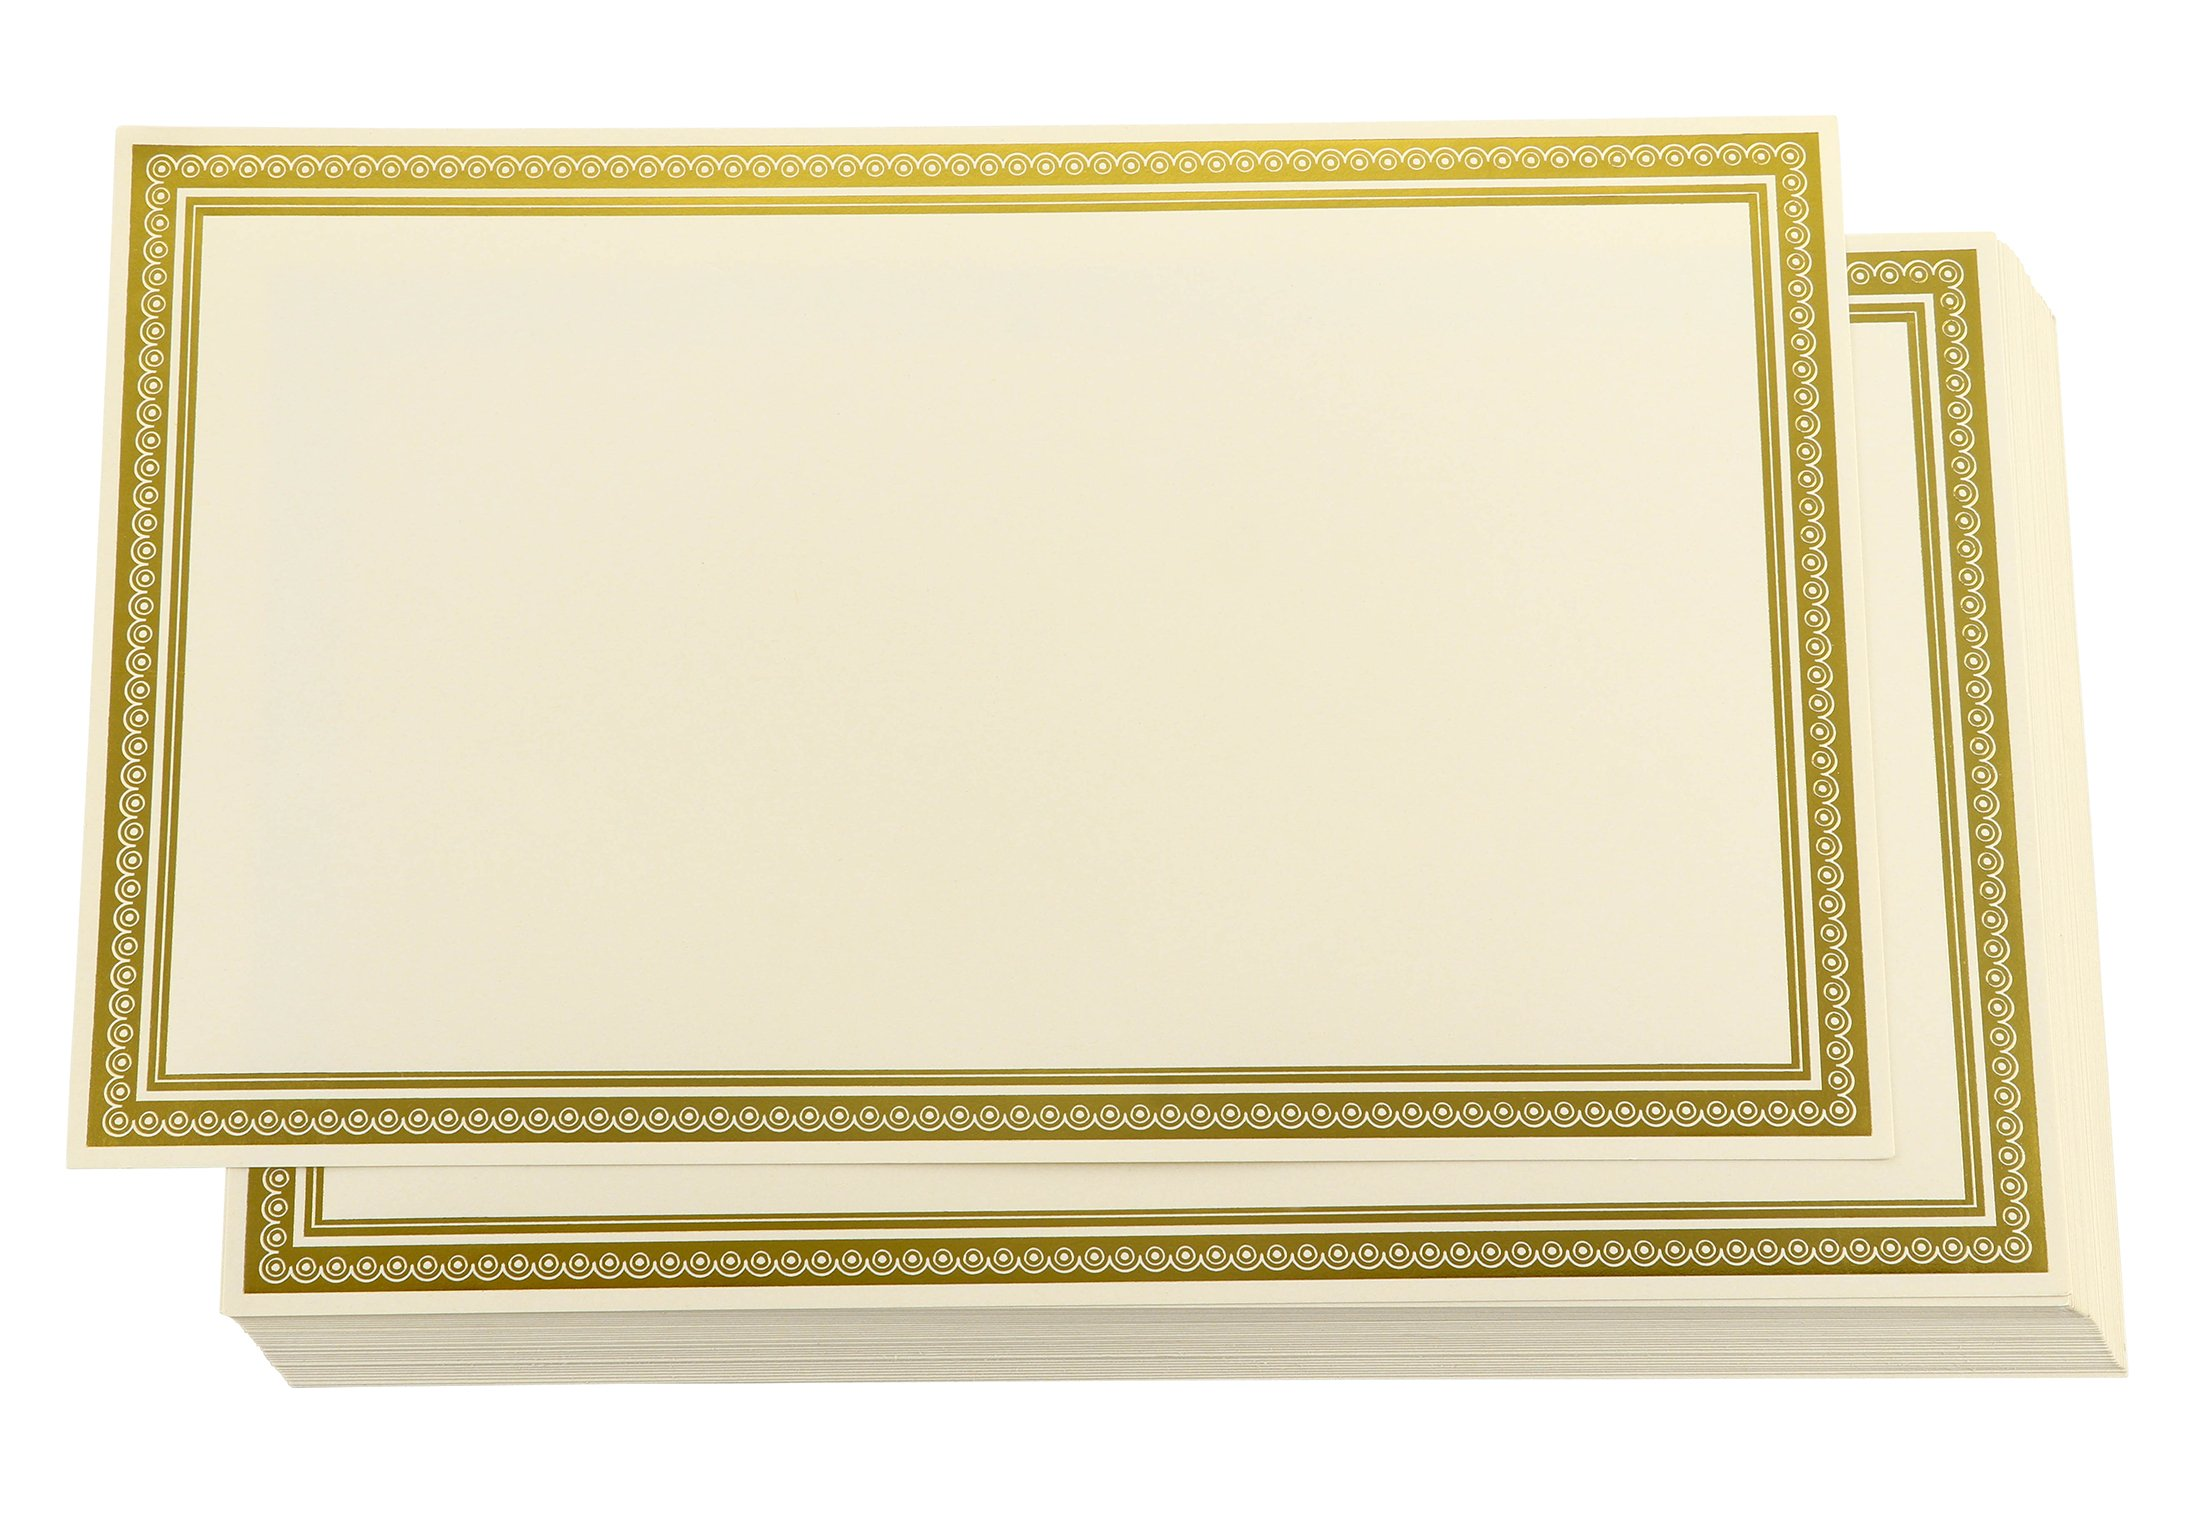 Award Certificates - 36-Pack Blank Plain Ivory Paper Sheets with Gold Foiled Metallic Border, Laser and Inkjet Printer Compatible, Legal Size, 8.5 x 14 inches